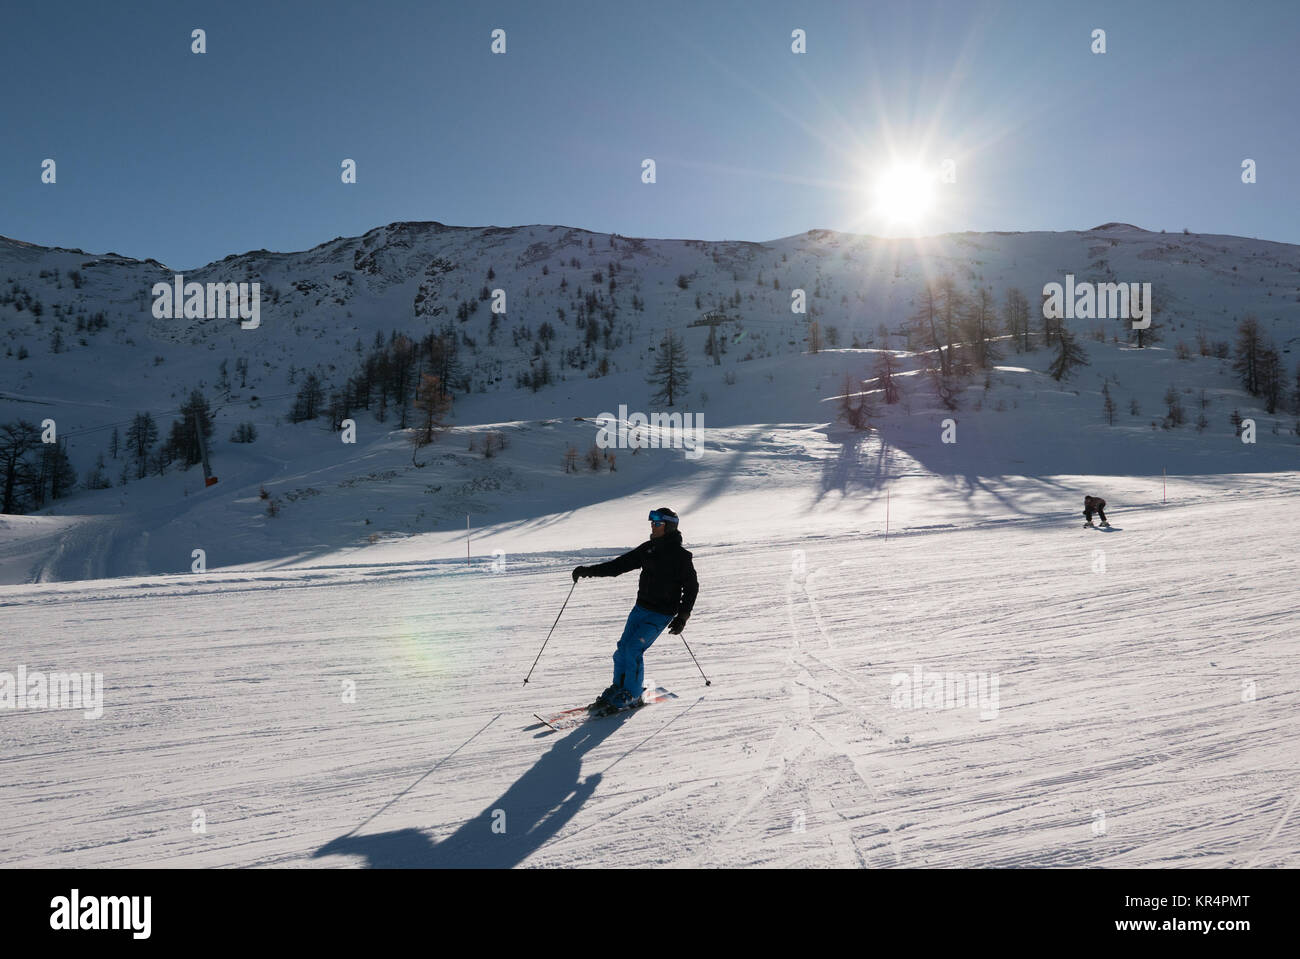 Skier skiing downhill during sunny day in high mountains  at Sauze D'Oulx Piedmont Italy - Stock Image